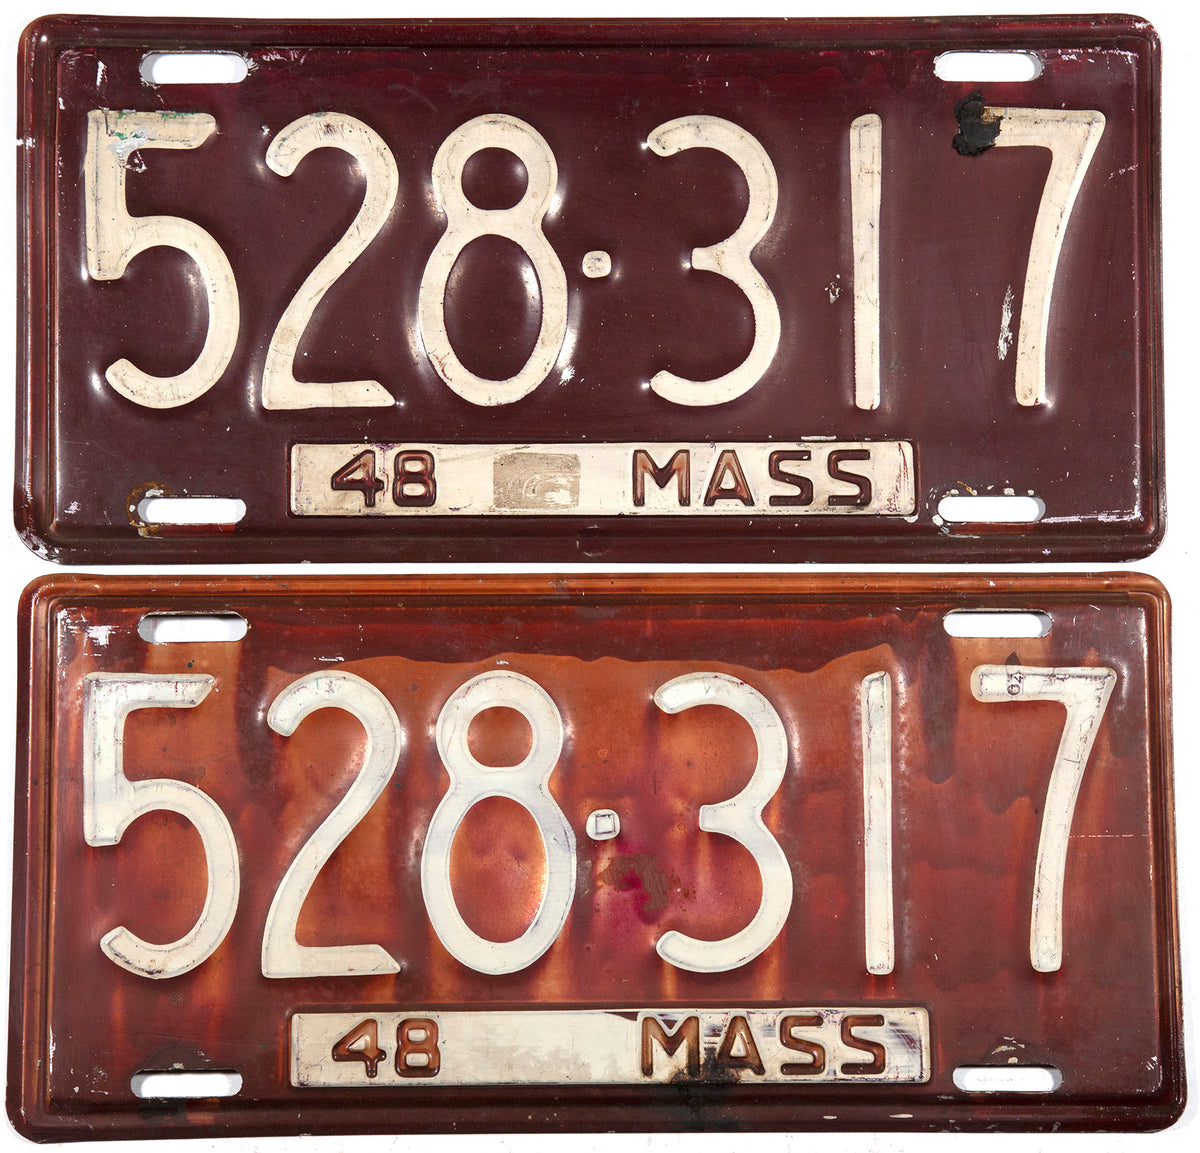 1948 pair of Massachusetts car license plates in very good minus condition